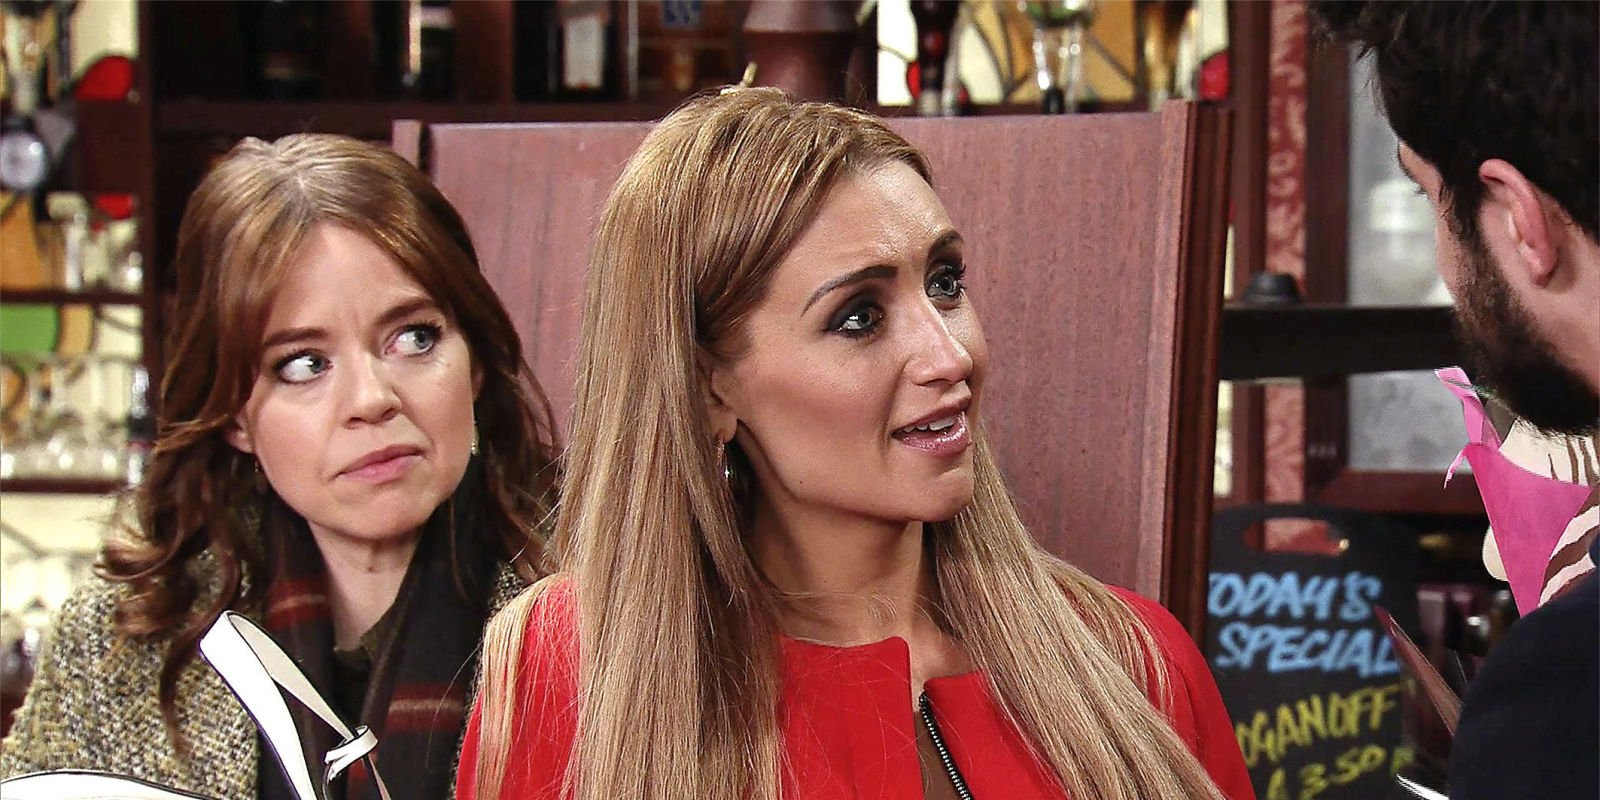 Coronation Street's Eva Price faces a big decision over her future with Adam Barlow